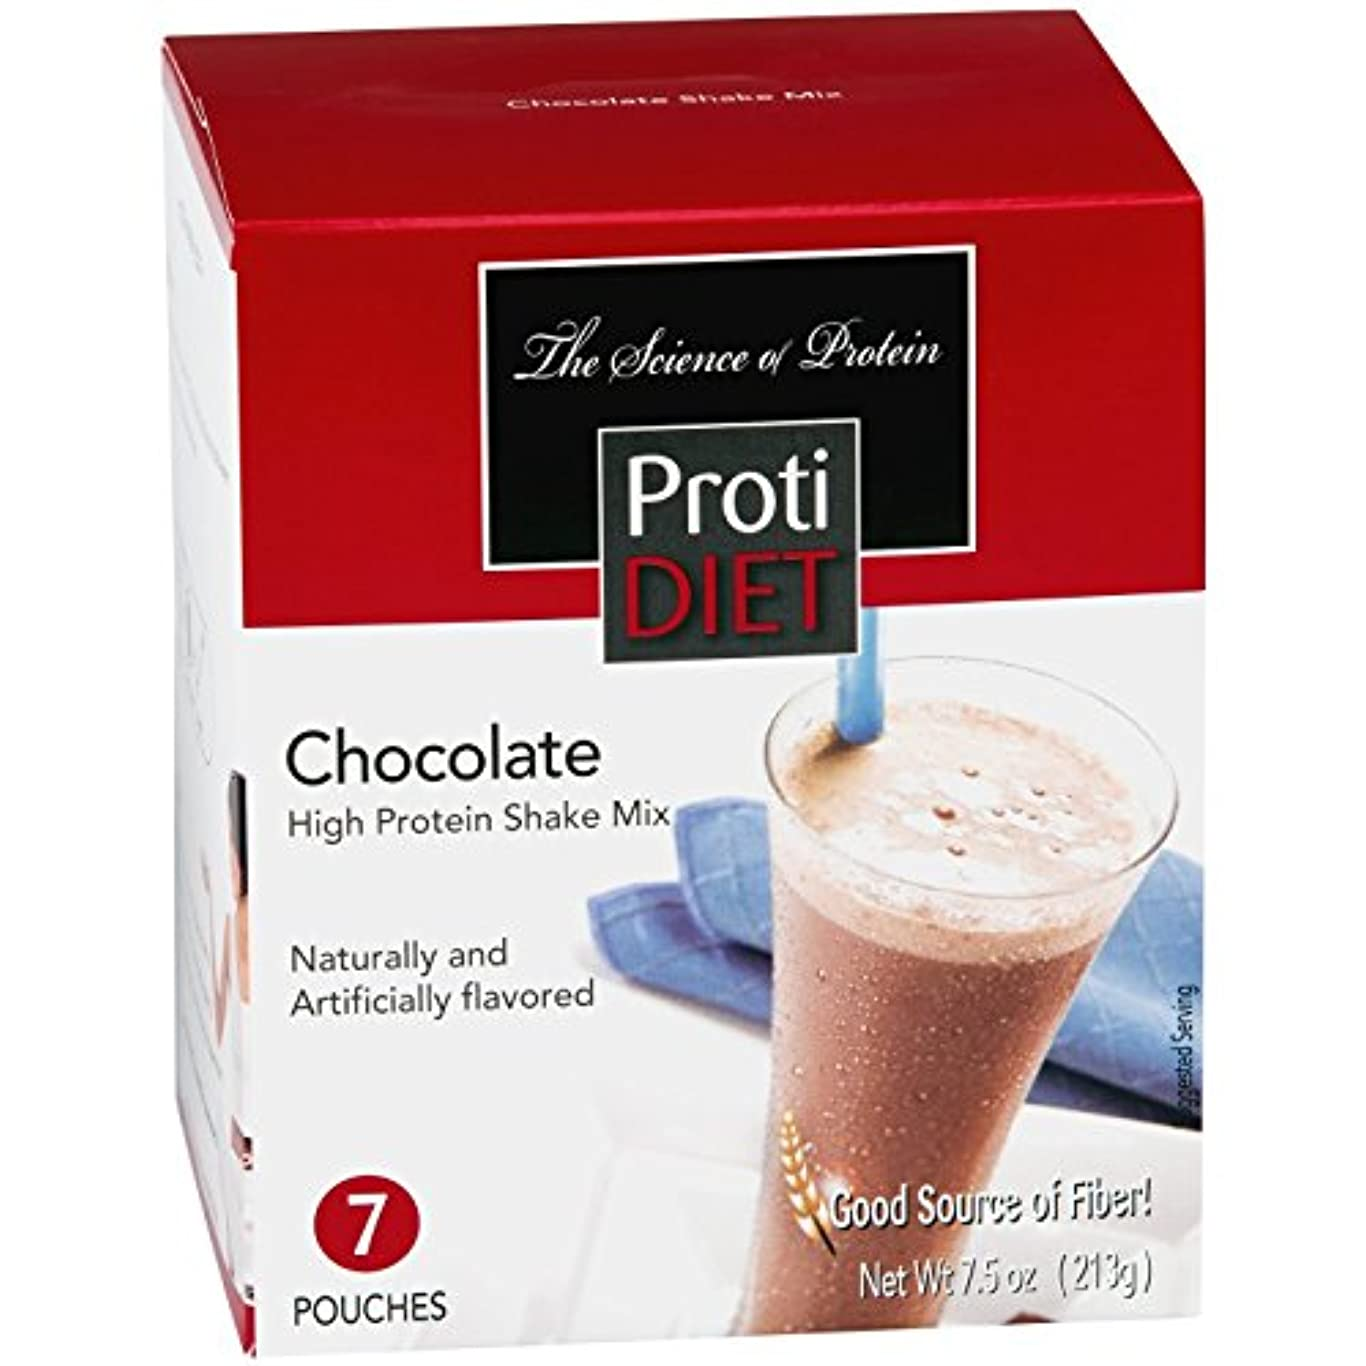 め言葉パパコントラストProti Diet Chocolate Shake (7 pouches per box) Net Wt 7.5oz (213g) by Protidiet